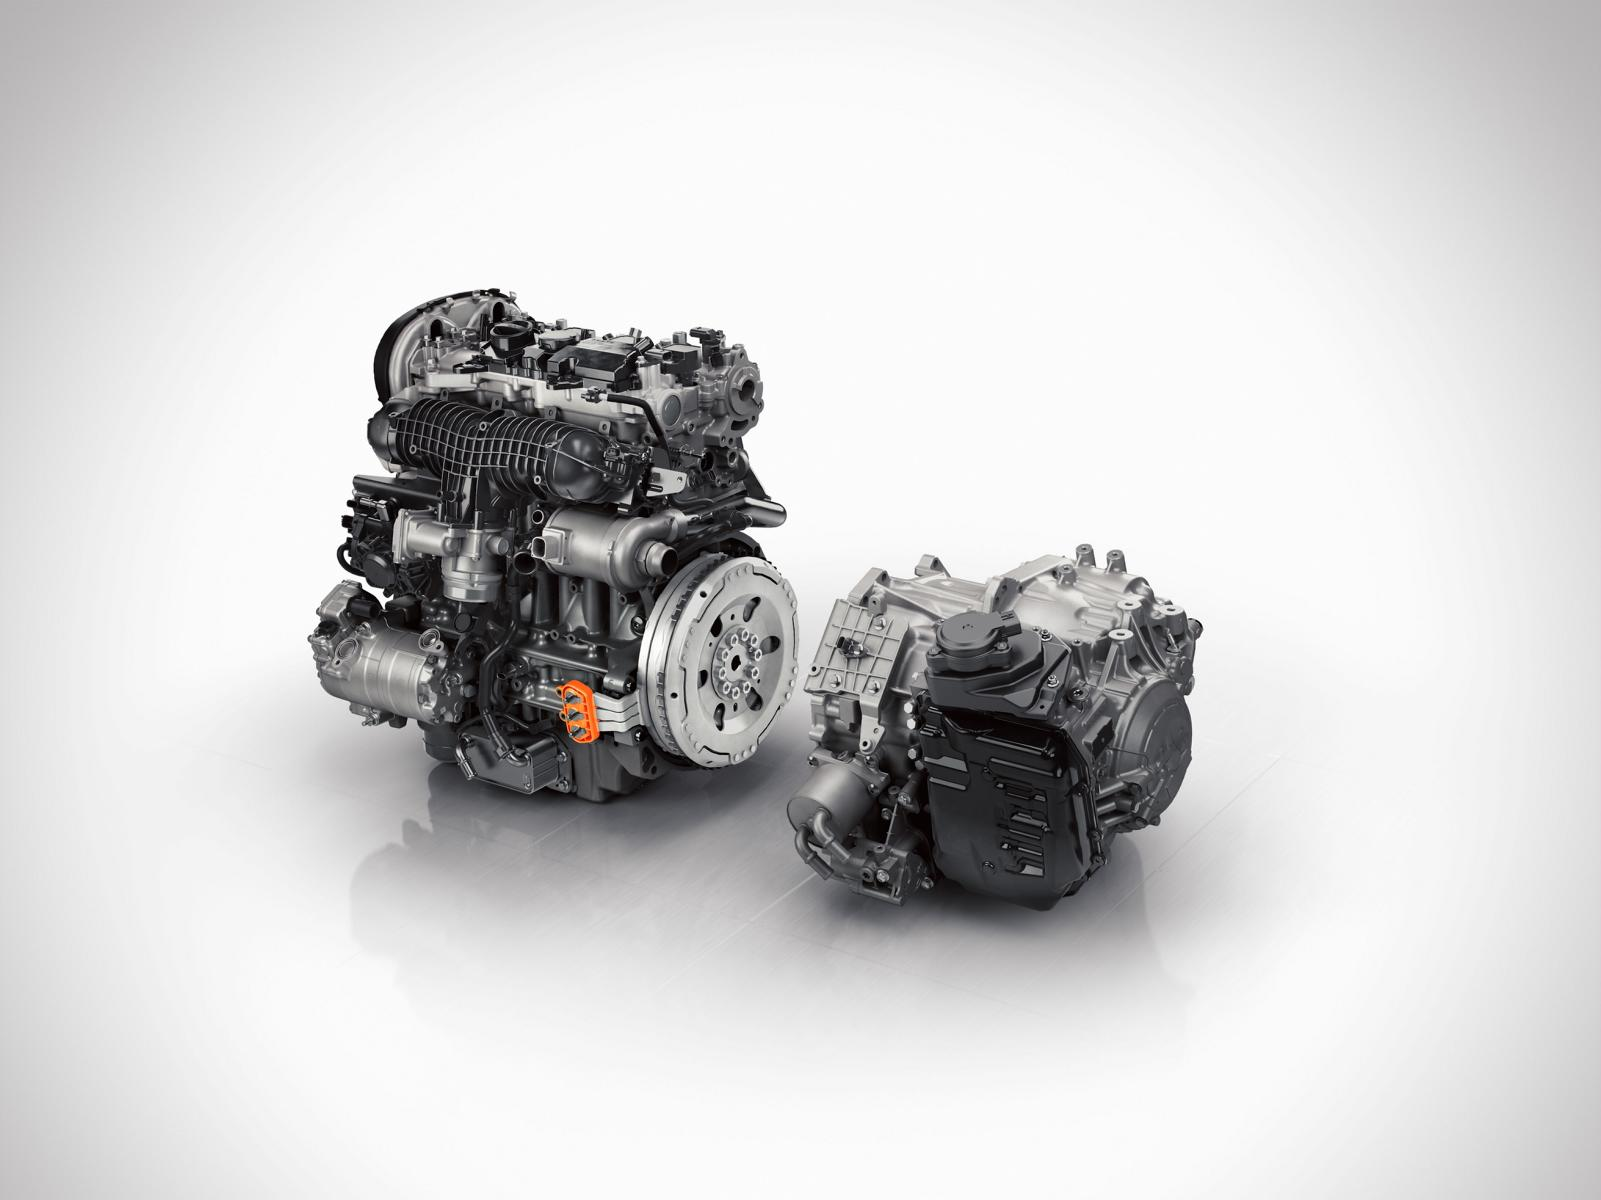 147970 Volvo XC90 Twin Engine Antriebsstrang